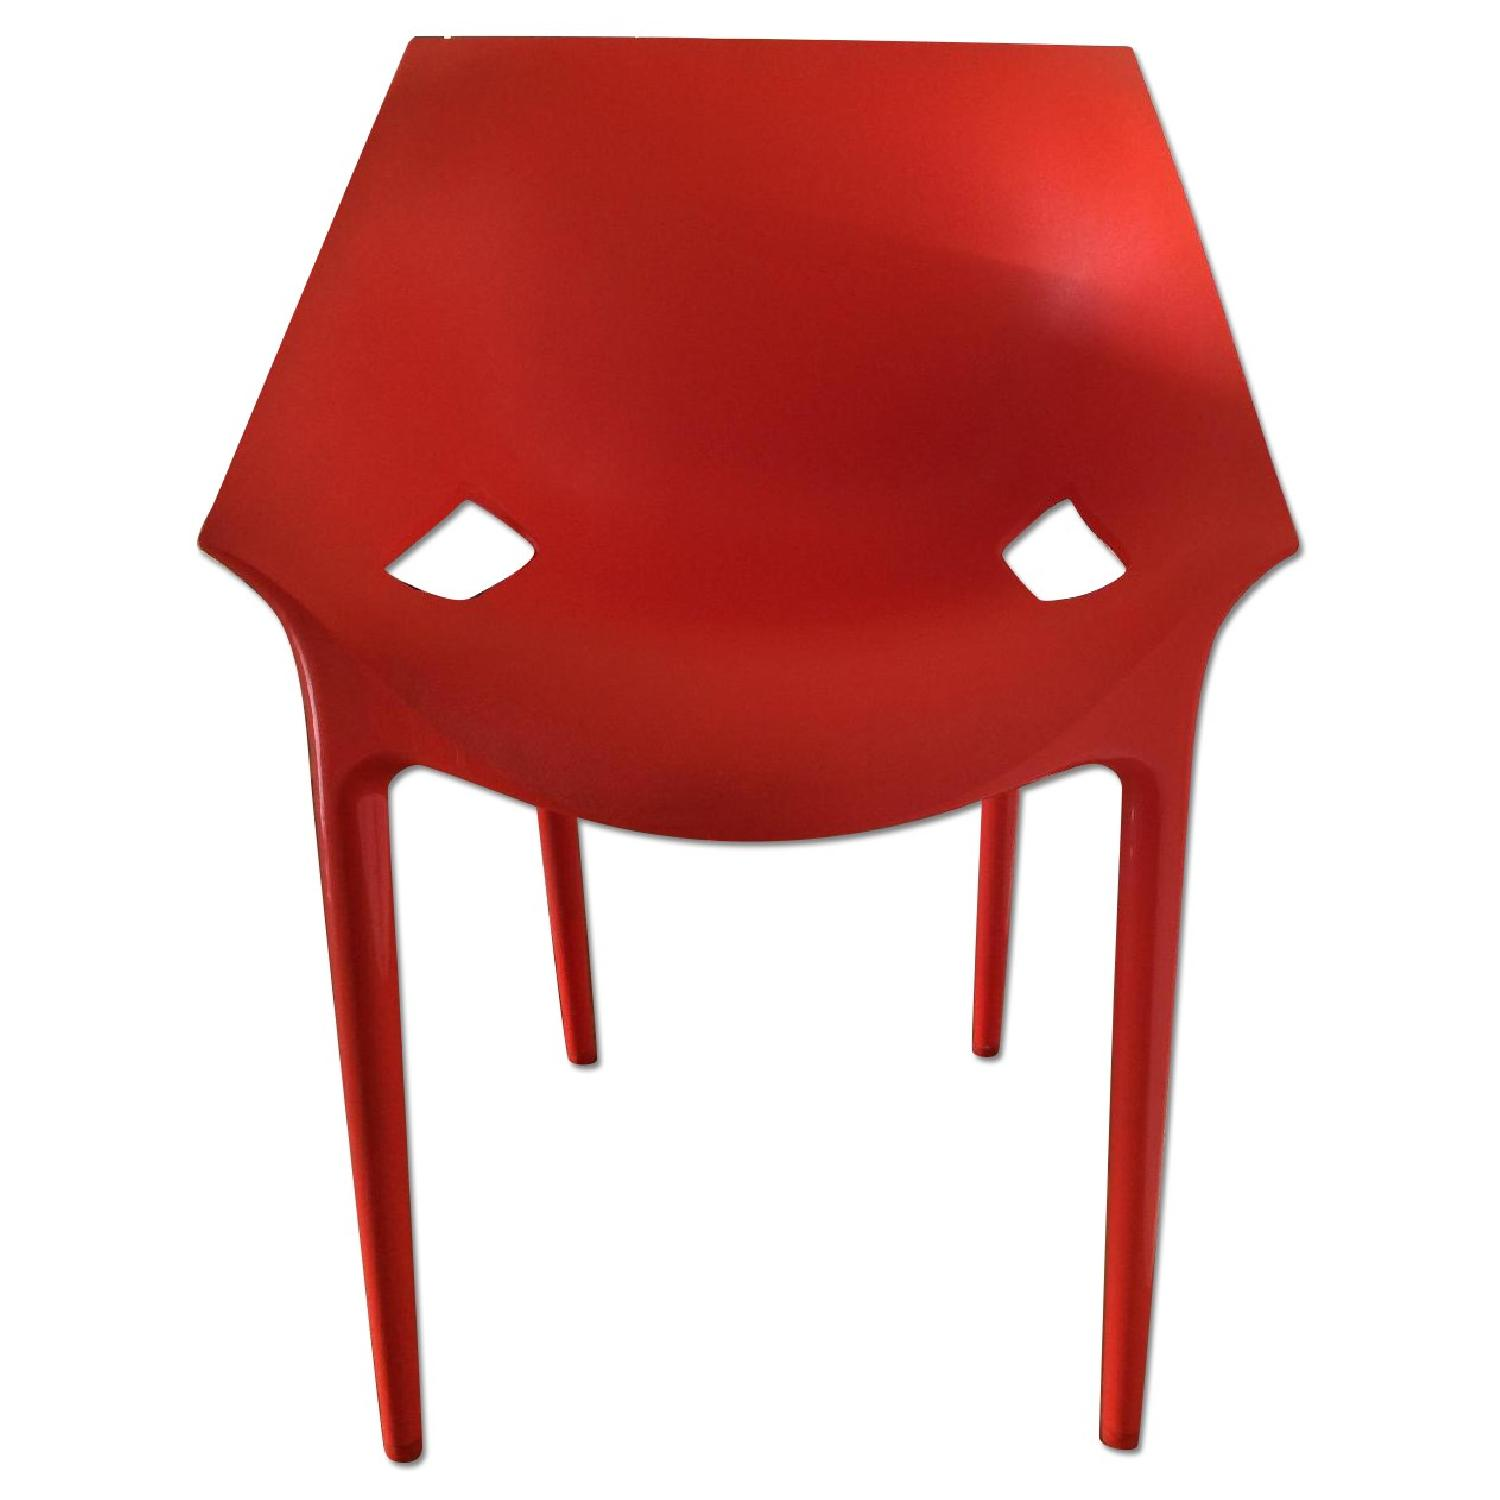 Kartell Dr. Yes Chair by Philippe Starck in Matte Orange Red - image-0